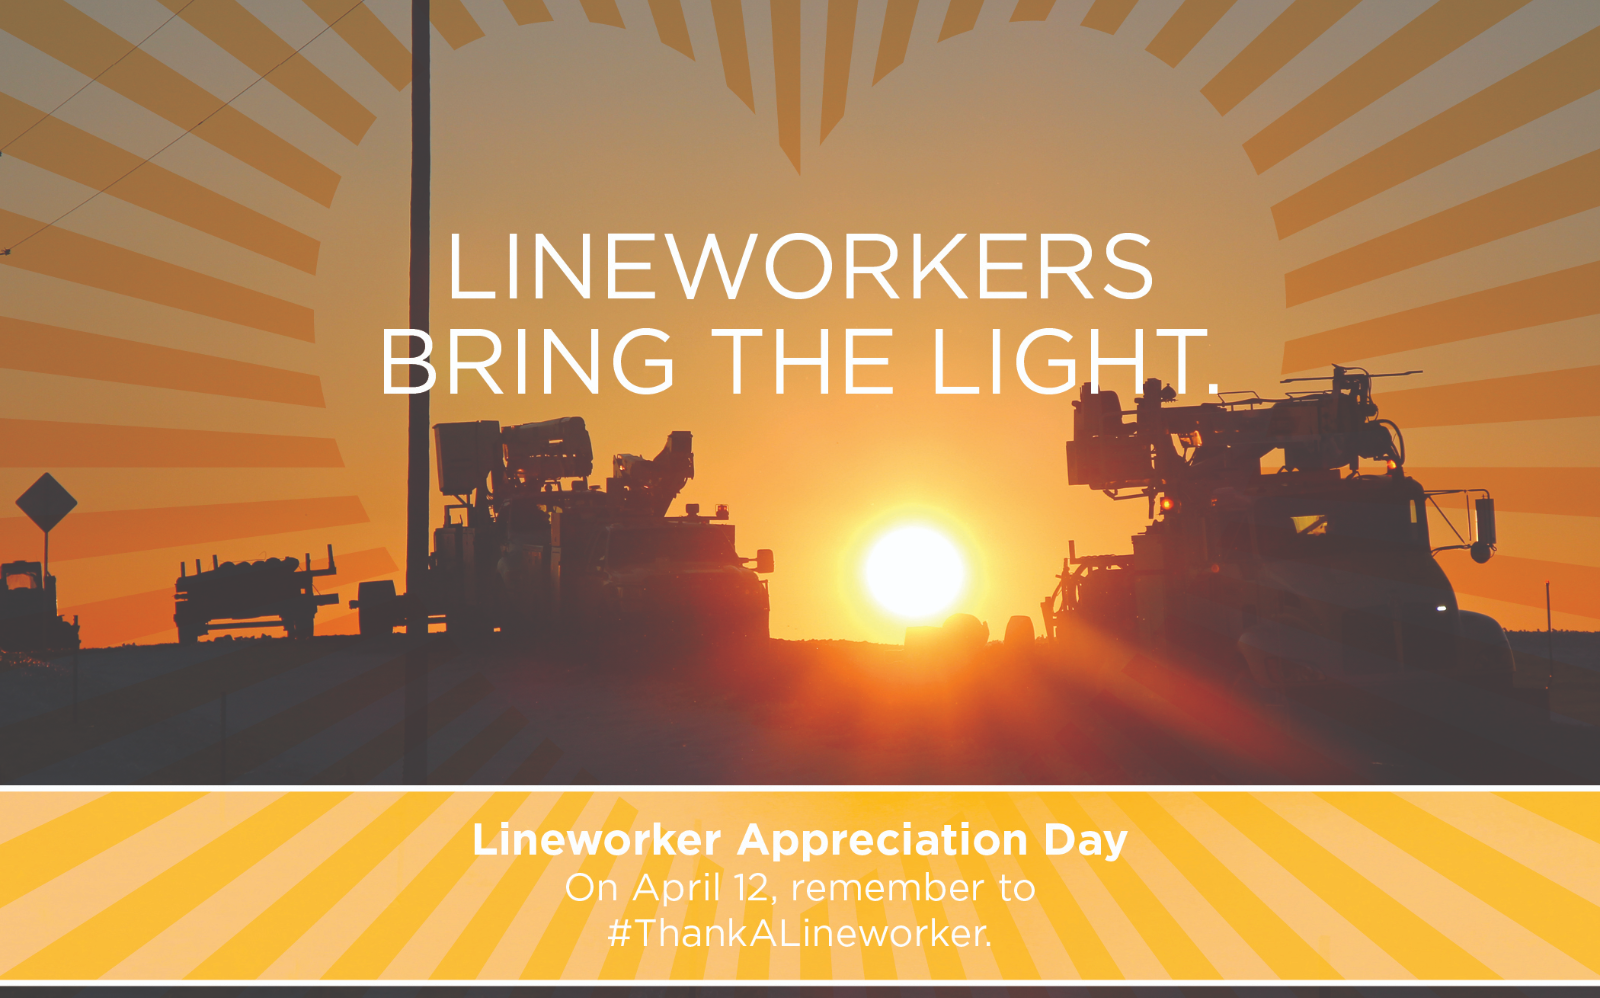 lneworkers and tagline about appreciating lineworkers